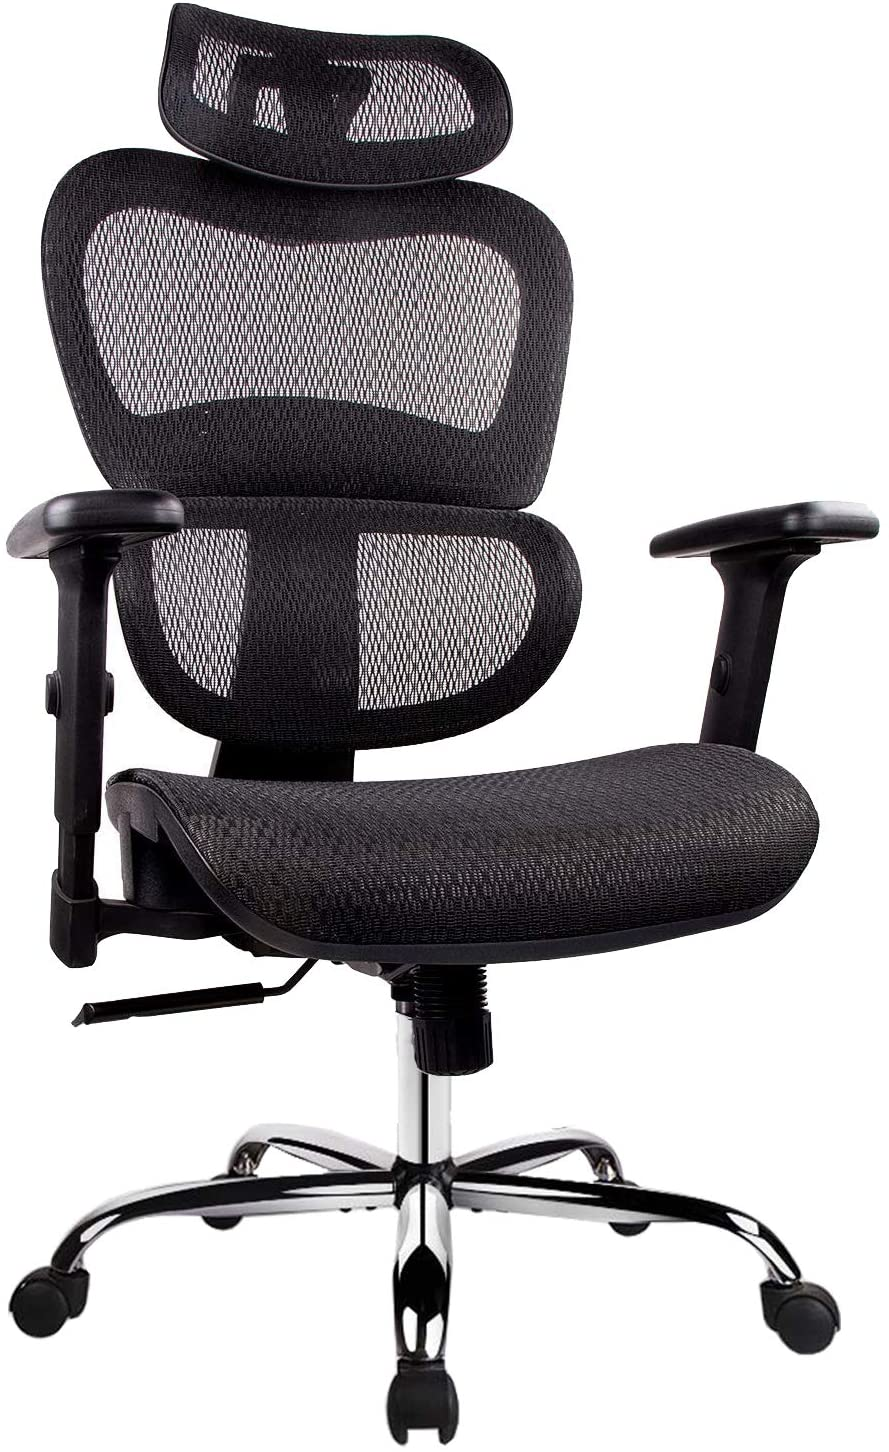 H21e04005e817423781bd422c21658d34I - Office Chair Ergonomics Mesh Chair Computer Chair Desk Chair High Back Chair gaming chair With Adjustable Headrest and Armrests